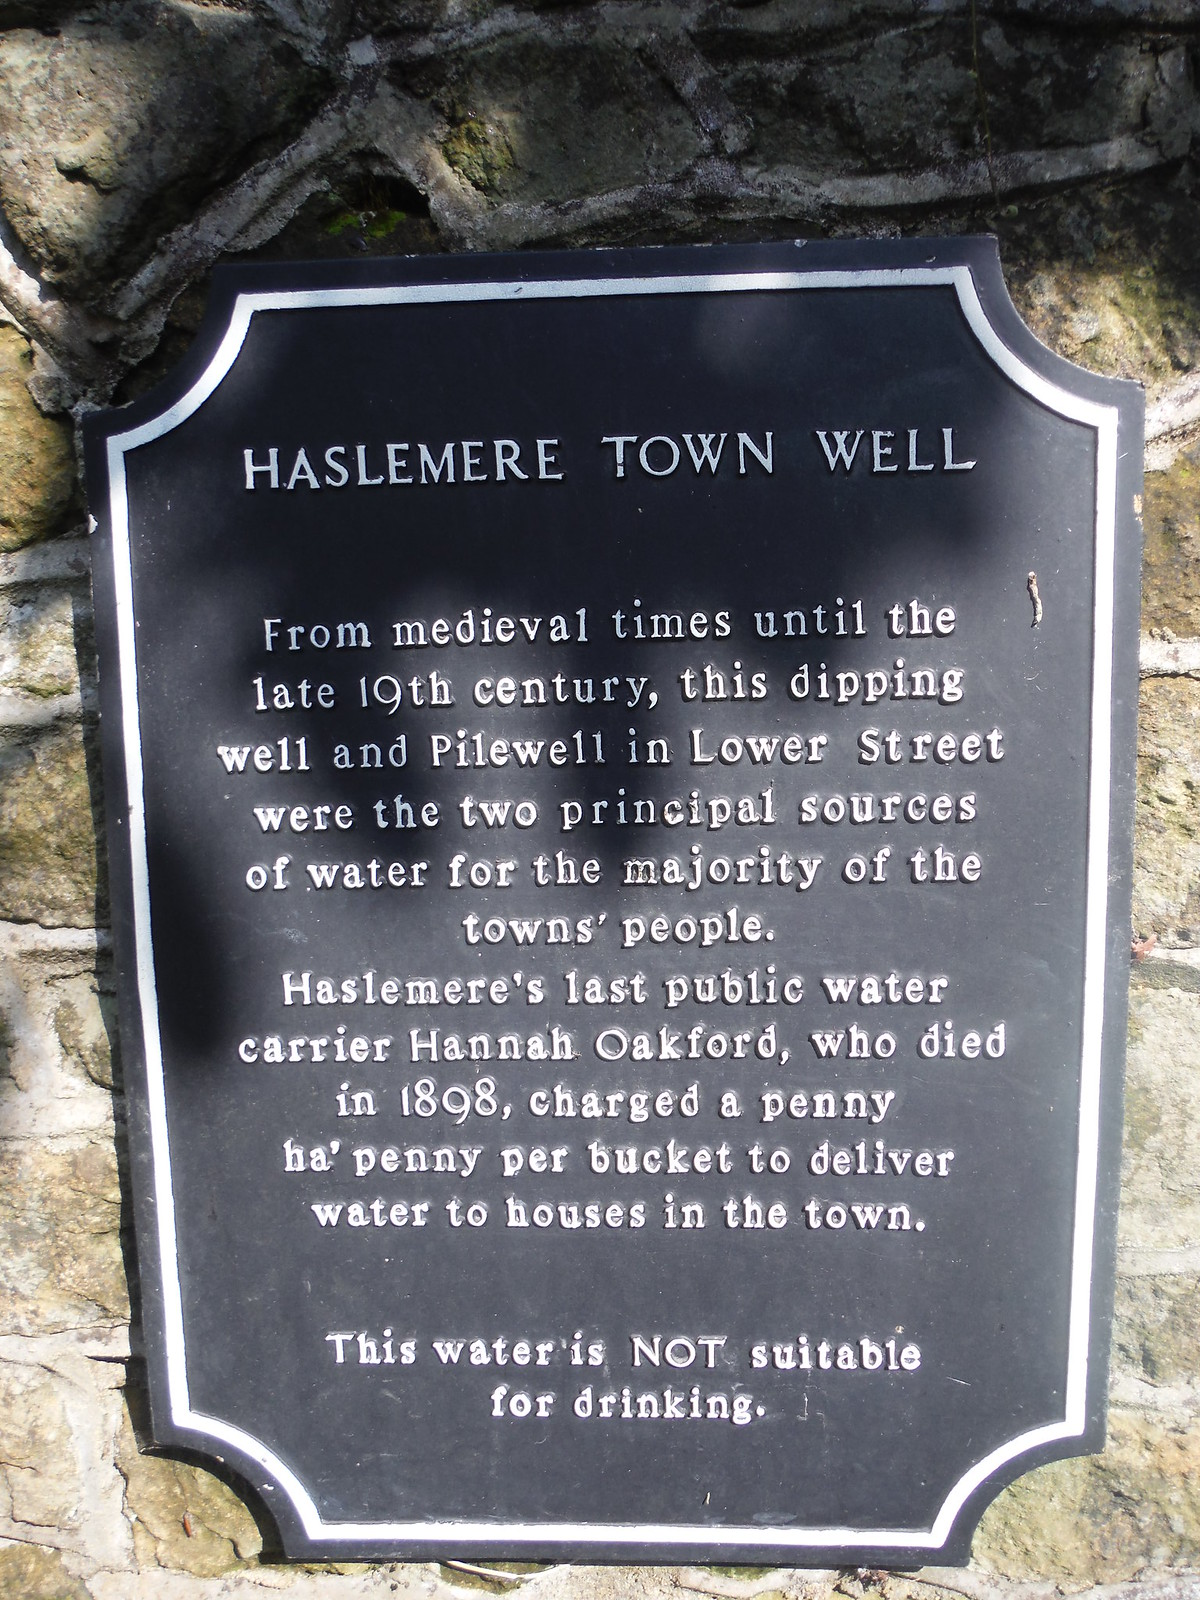 Haslemere Town Well Plaque SWC Walk 48 Haslemere to Midhurst (via Lurgashall or Lickfold)